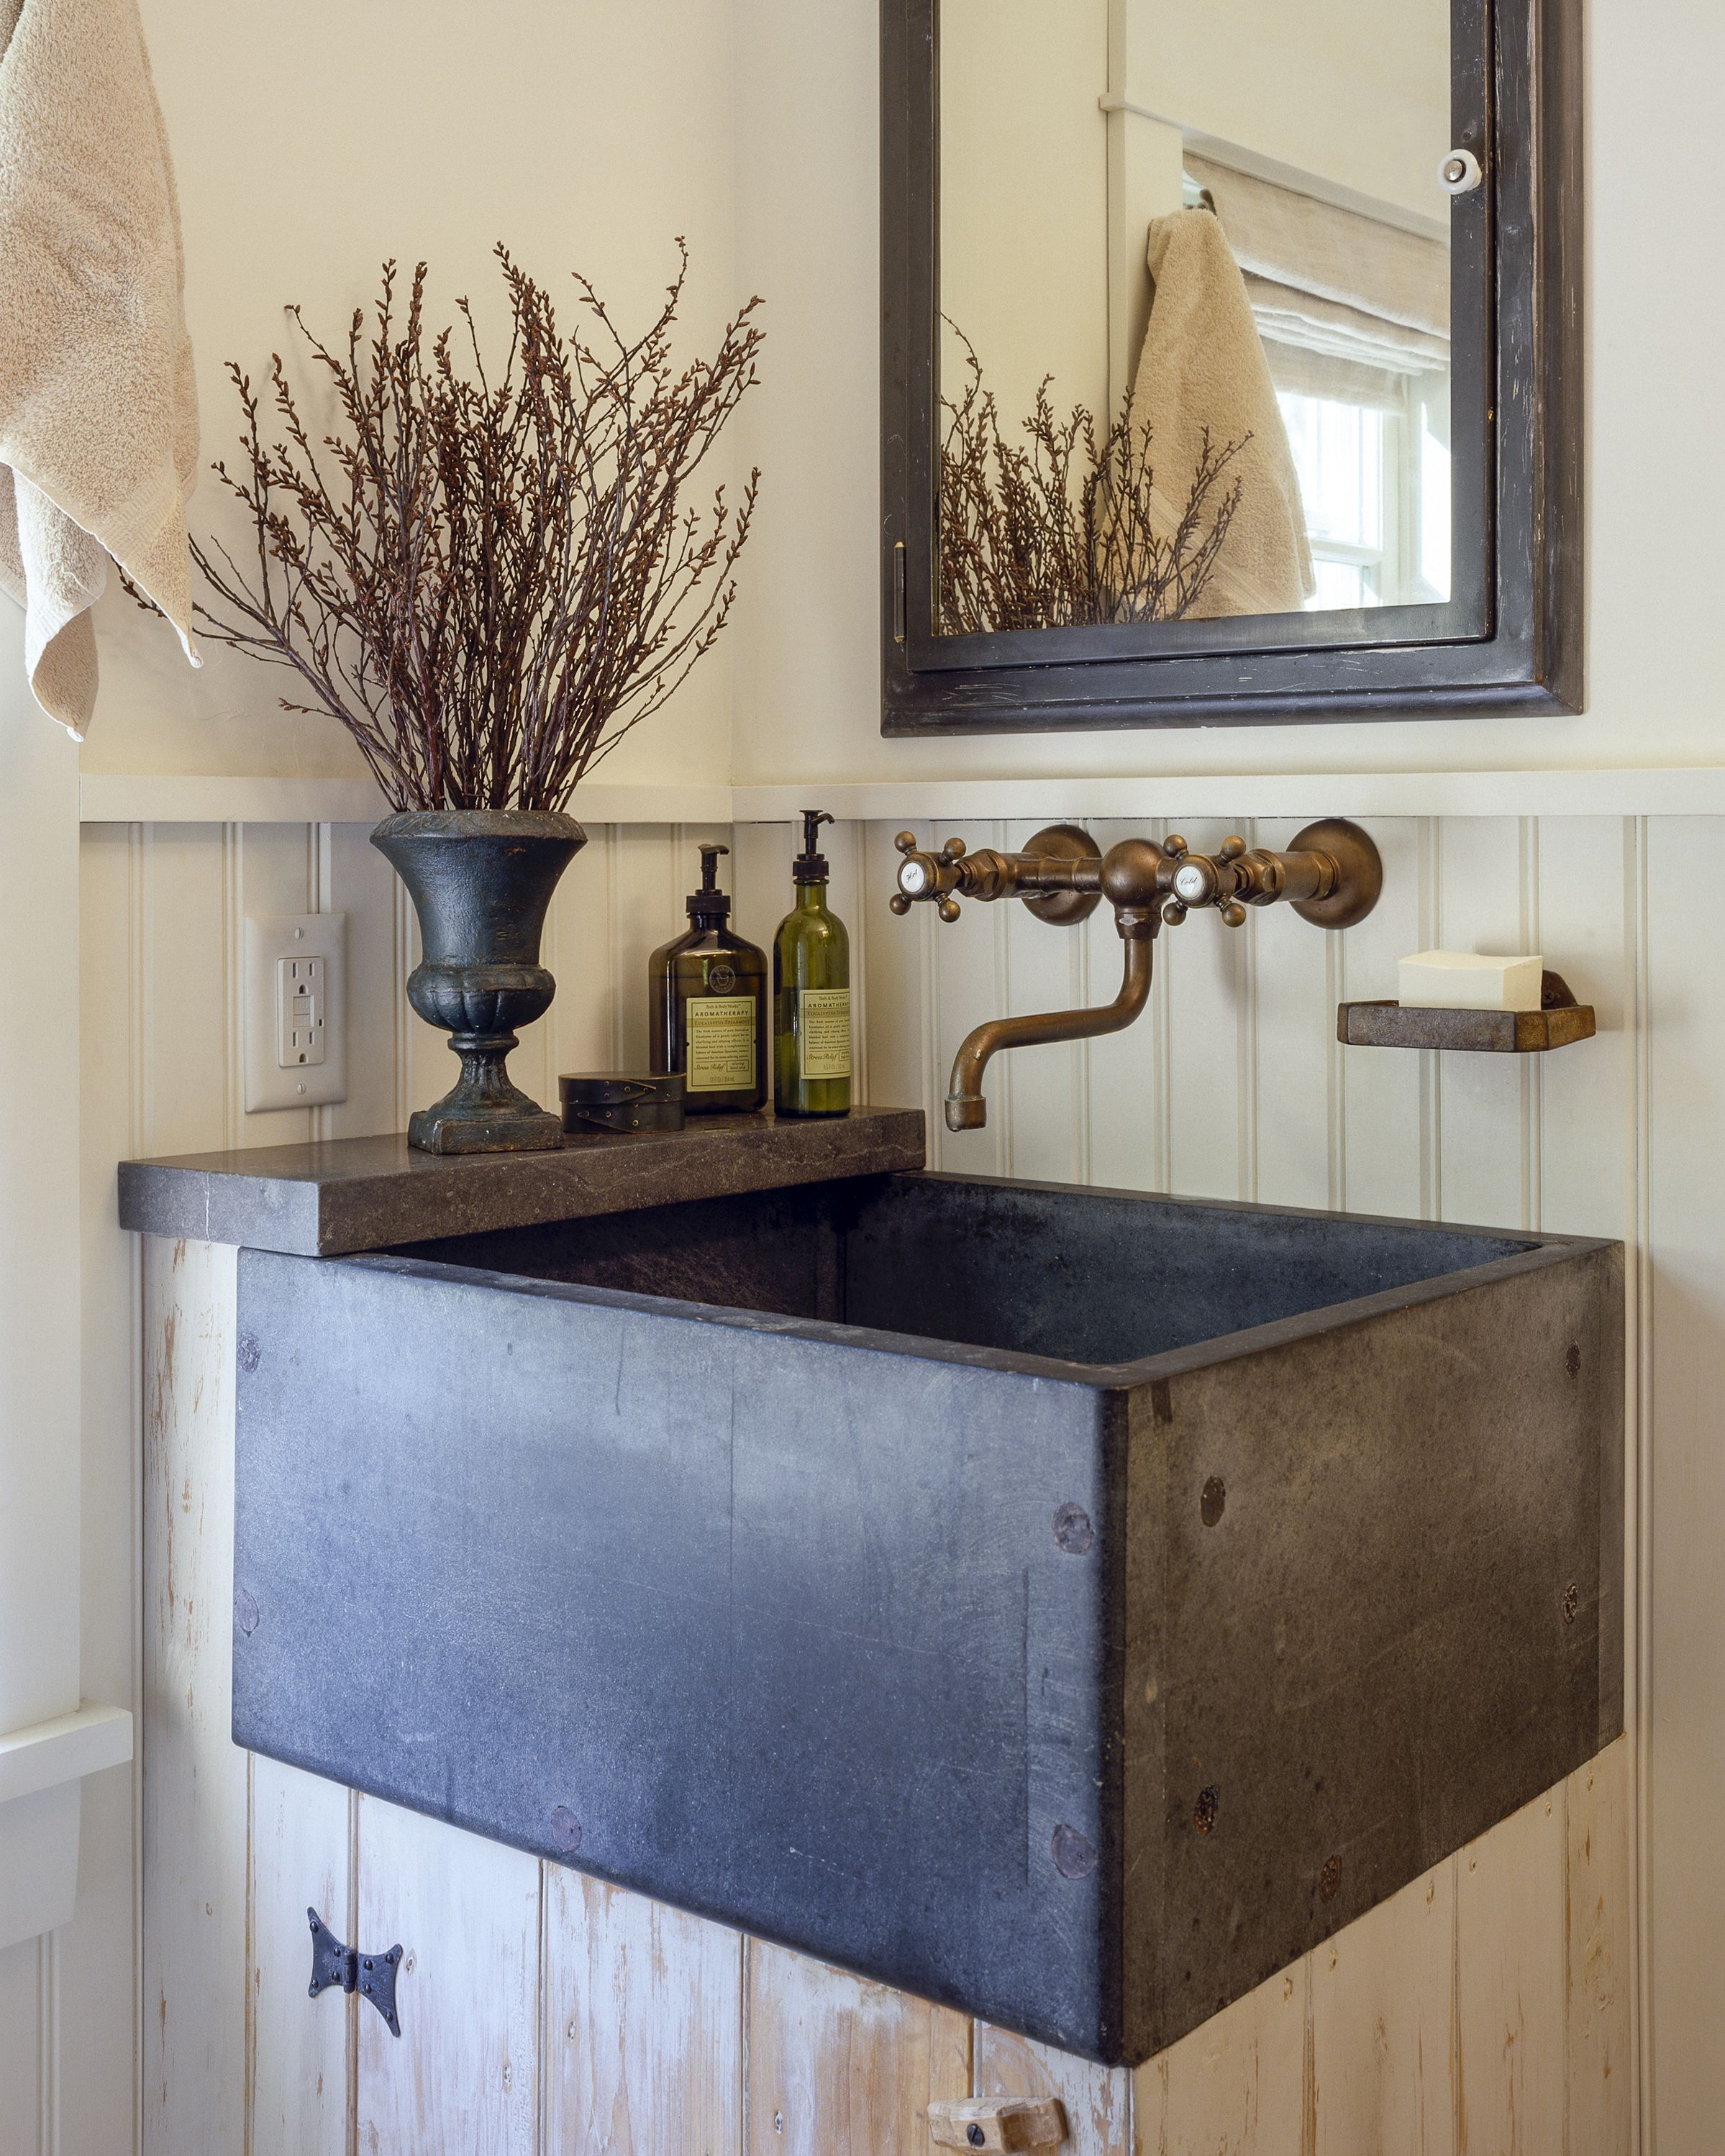 Cool Sink Country Bathroom Decor Modern Vintage Bathroom Rustic House